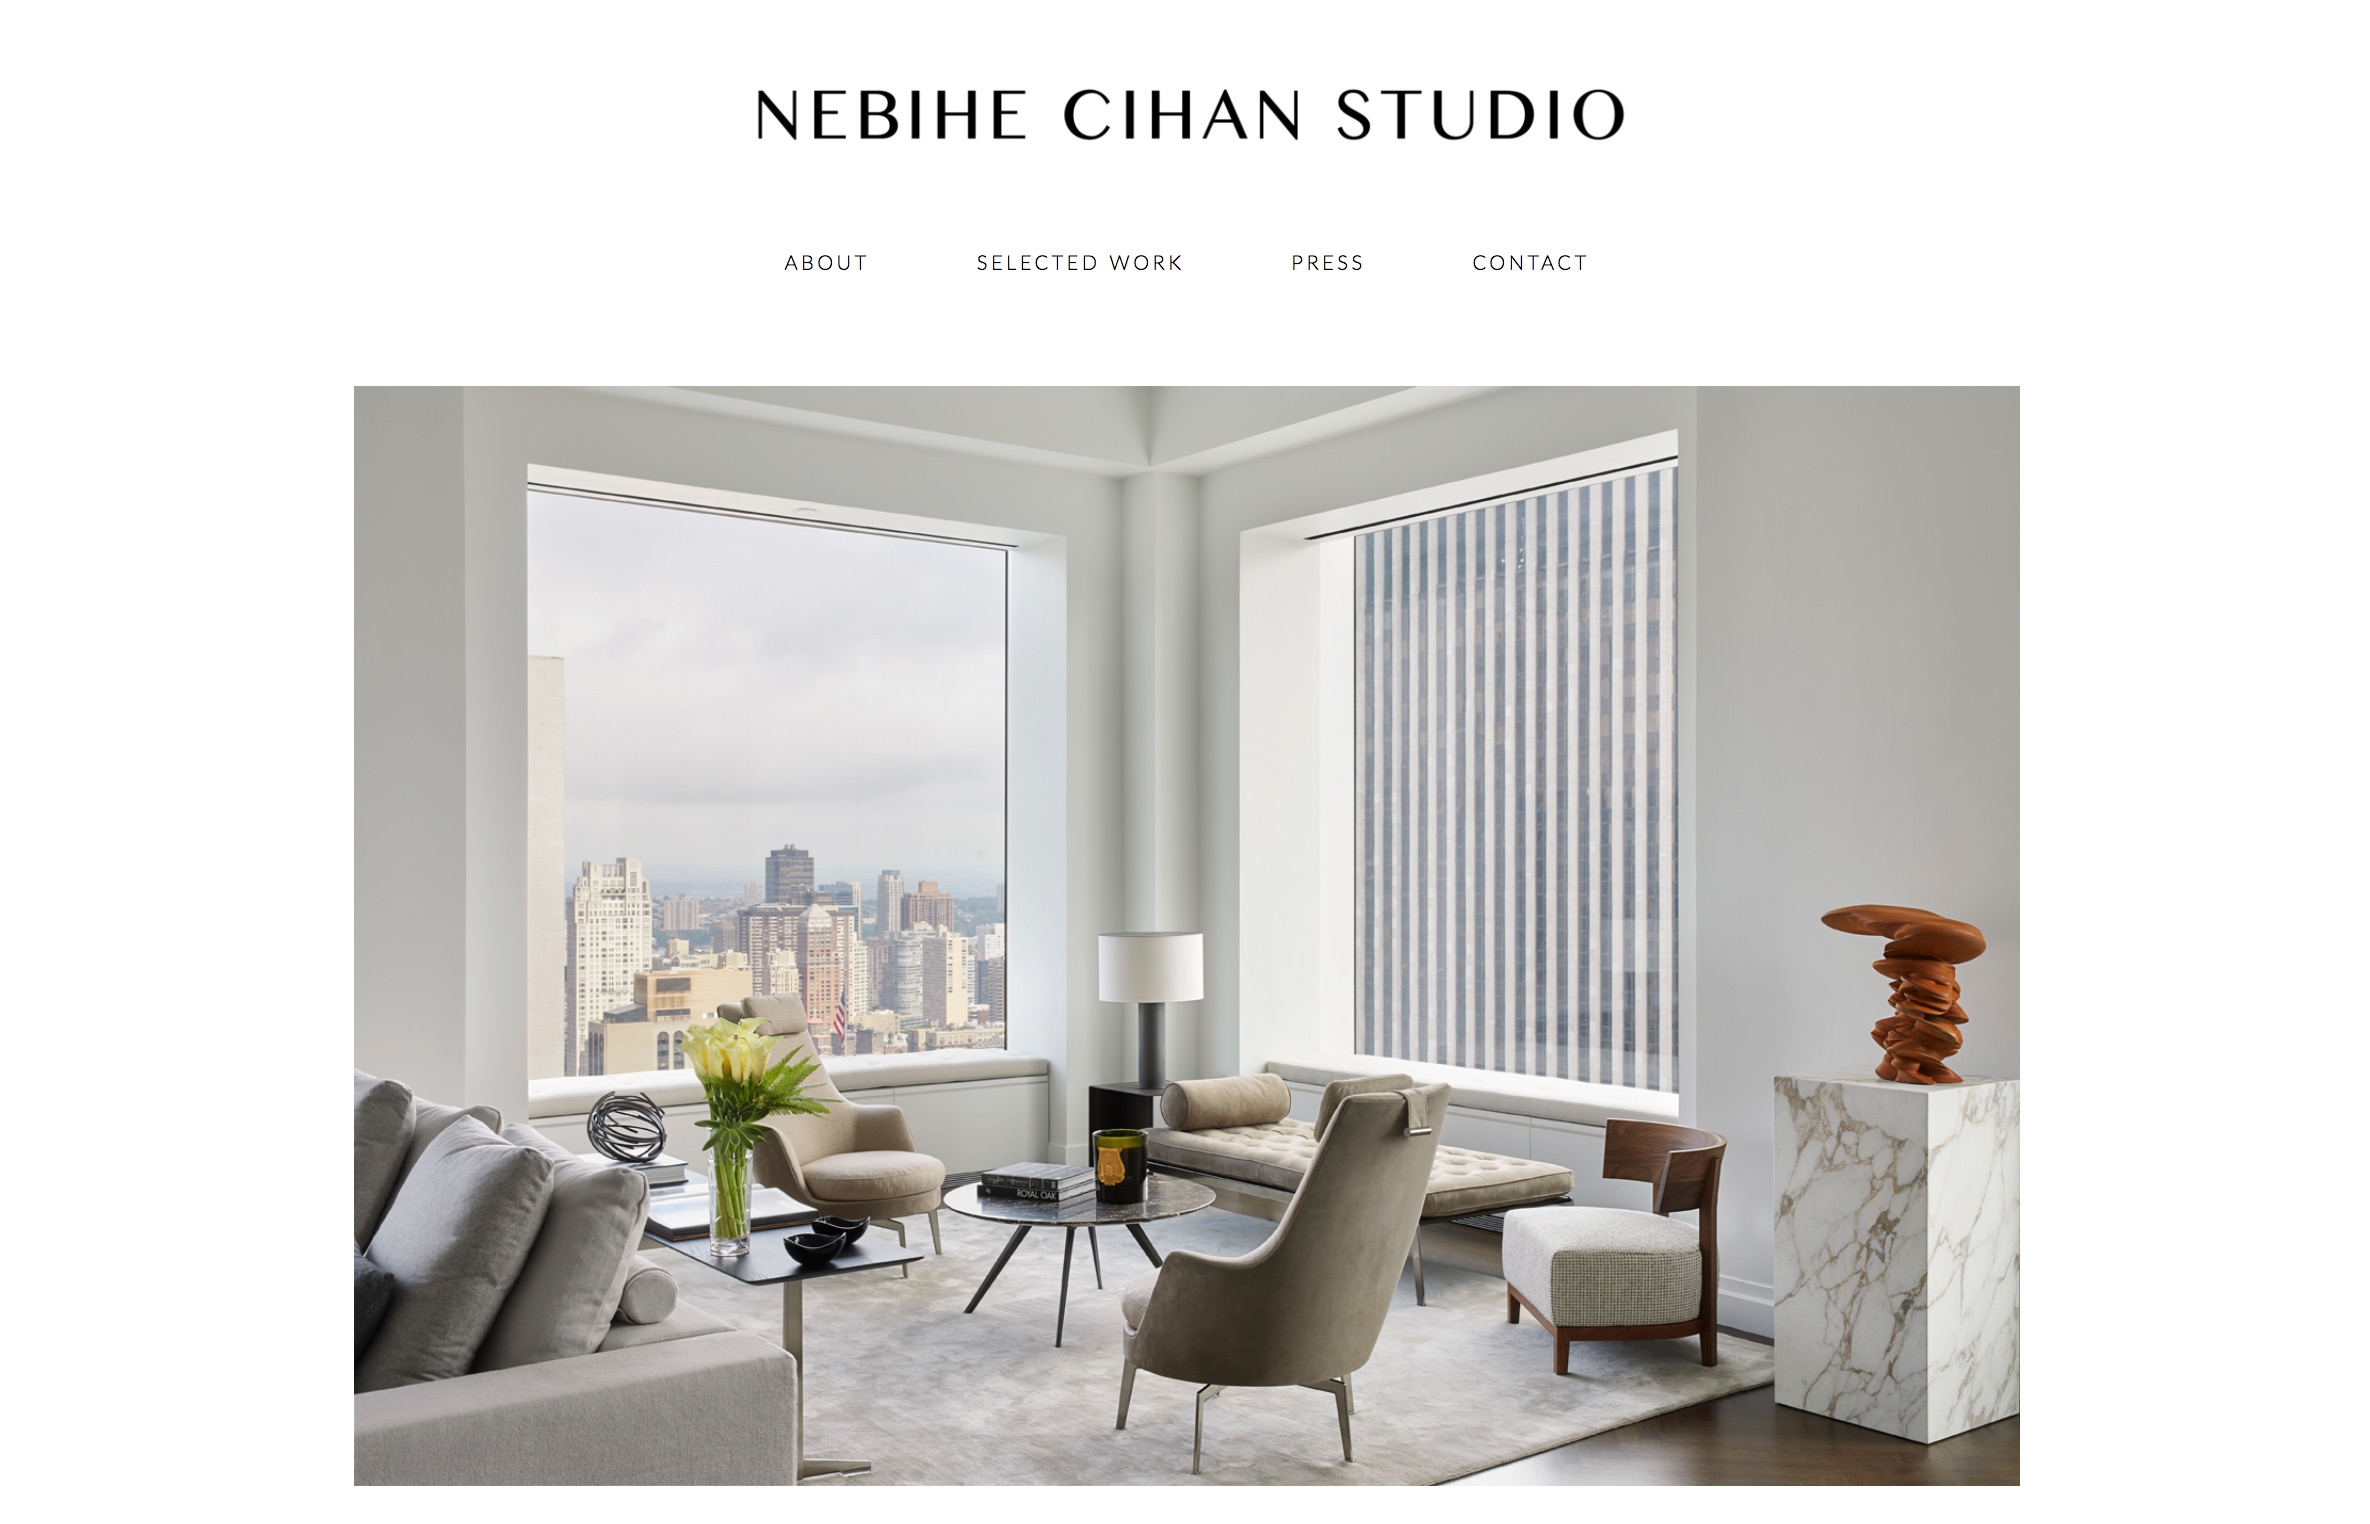 NEBIHE CIHAN STUDIO [INTERIOR DESIGN]